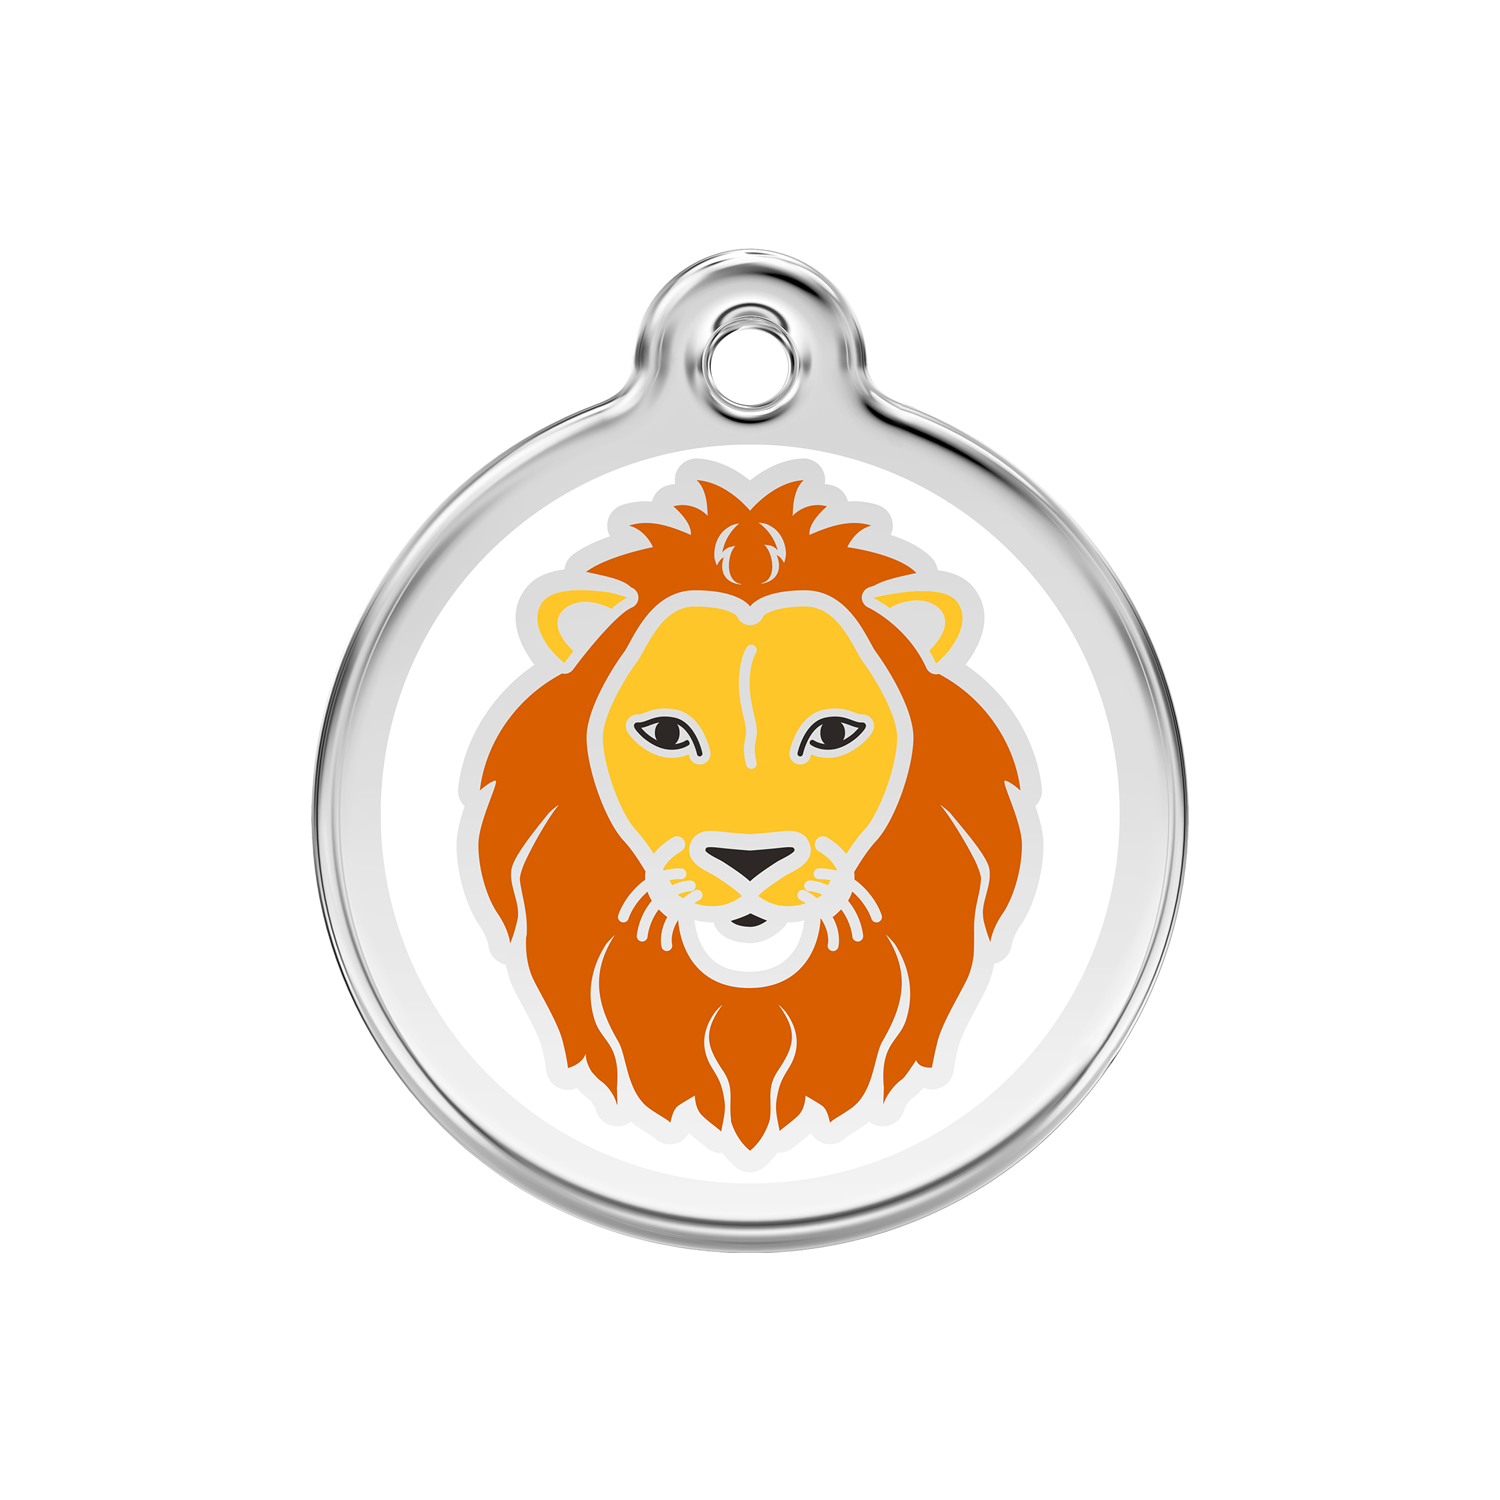 Lion Medium Enamel & Stainless Steel Tag>